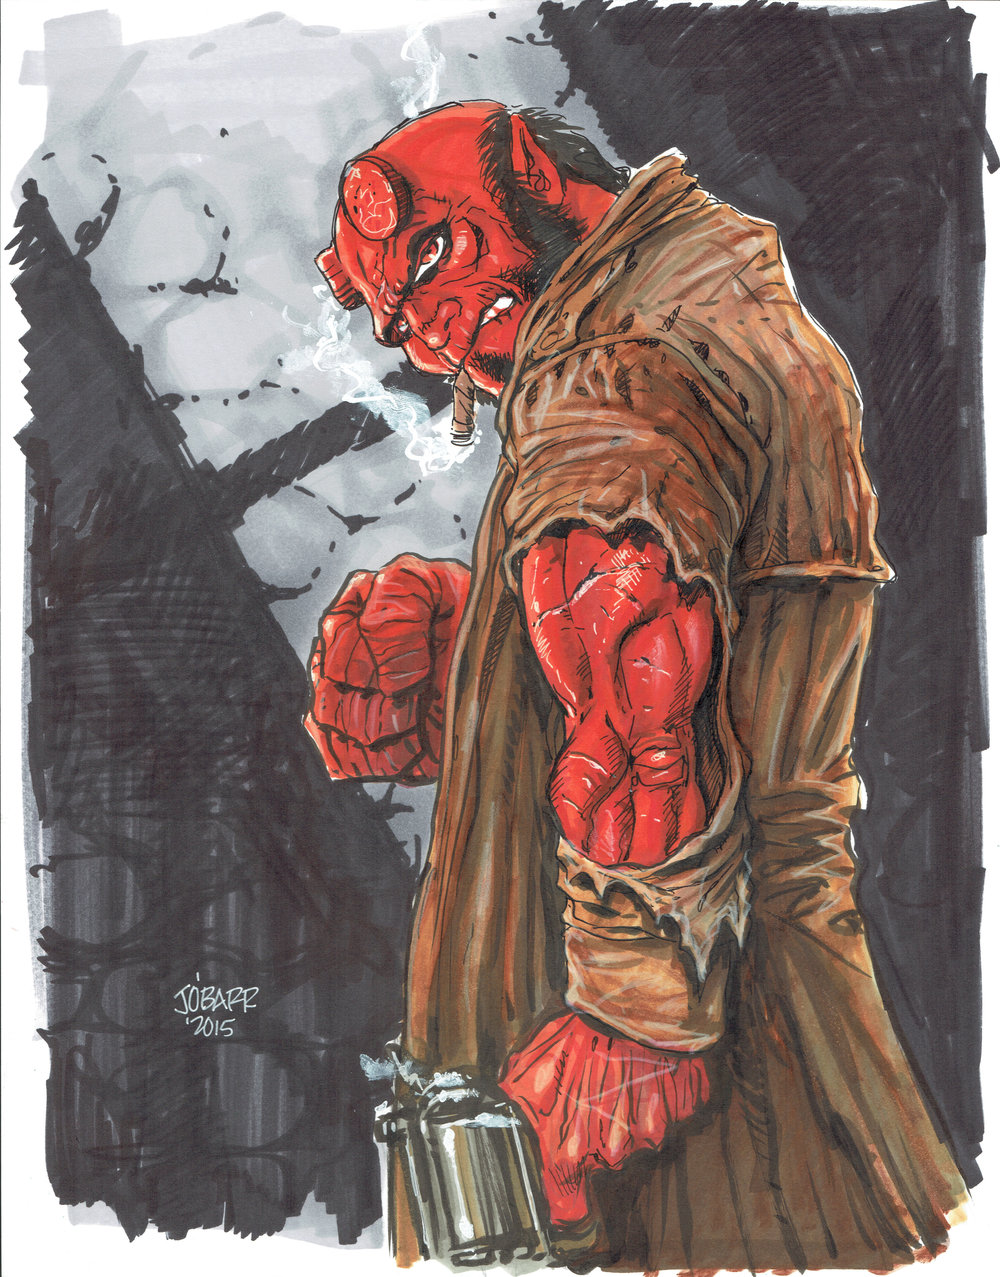 Hellboy  commission done in 2015 by  James O'Barr .